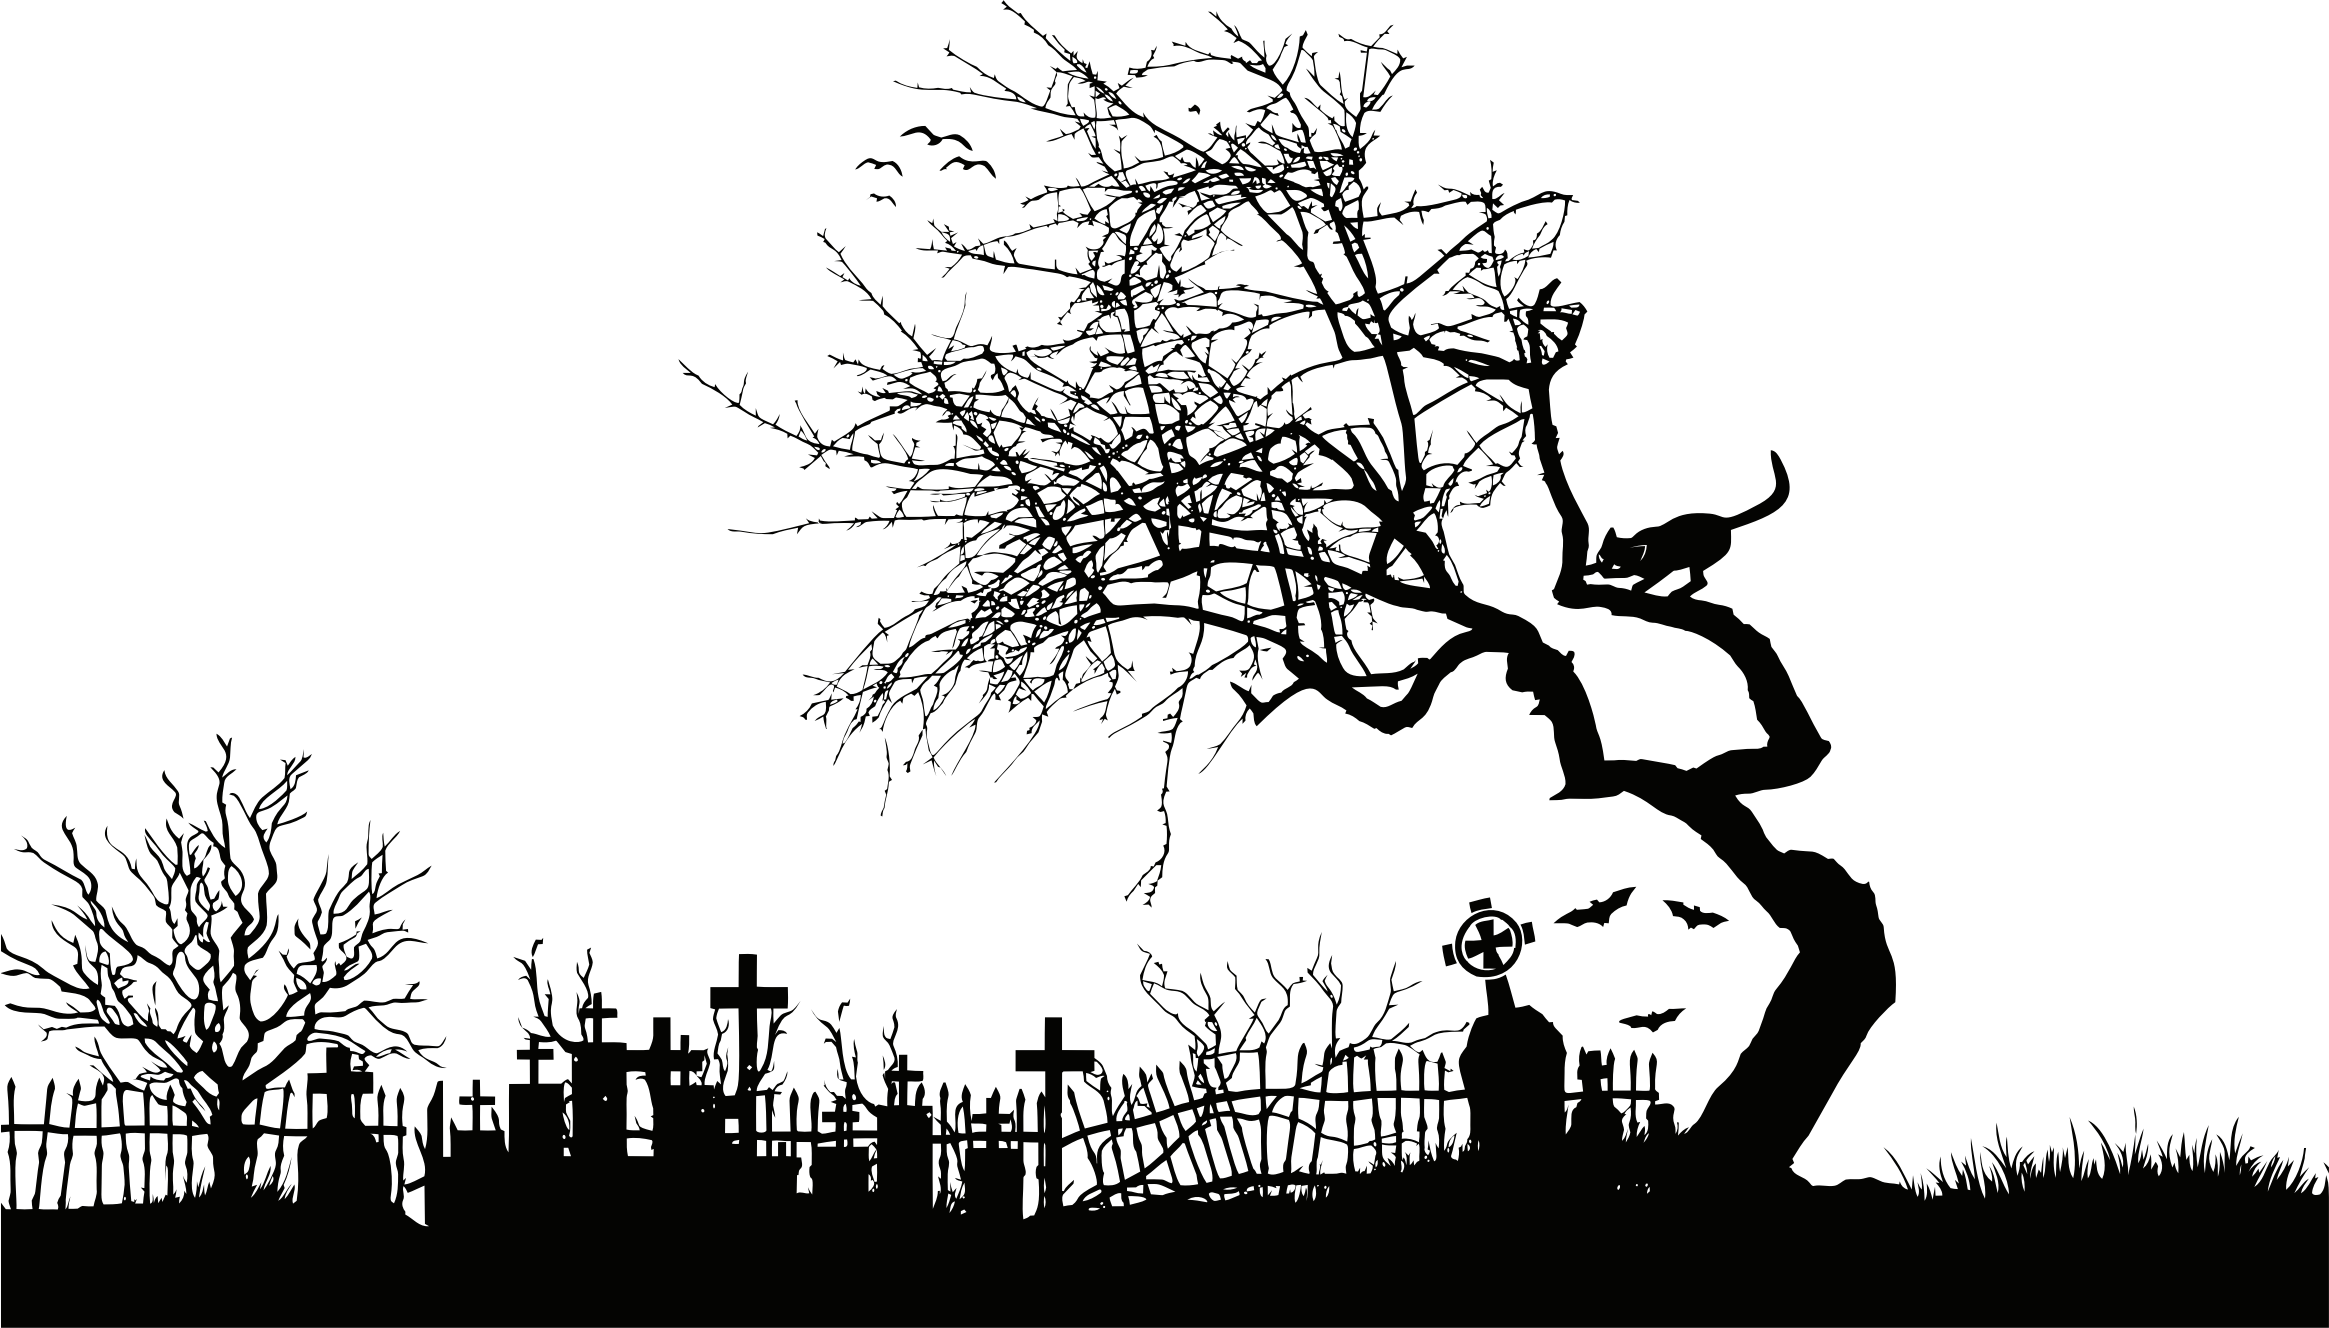 Graveyard clipart. Midnight silhouette isolated big